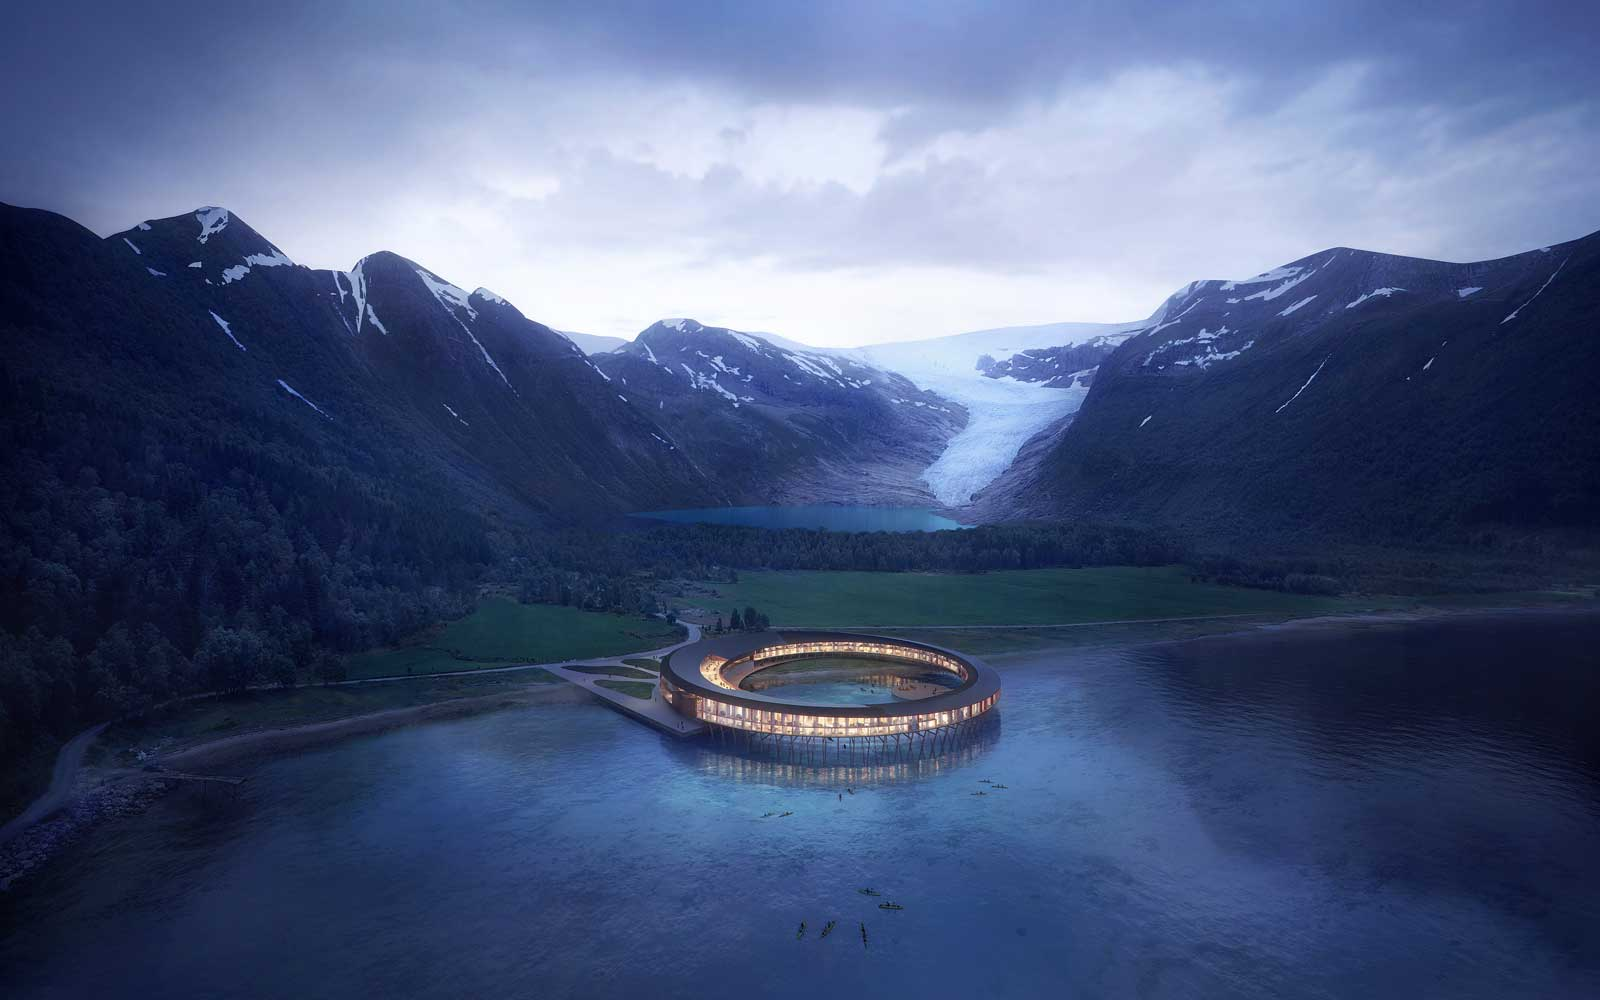 Overview of the Svart Arctic Circle Hotel